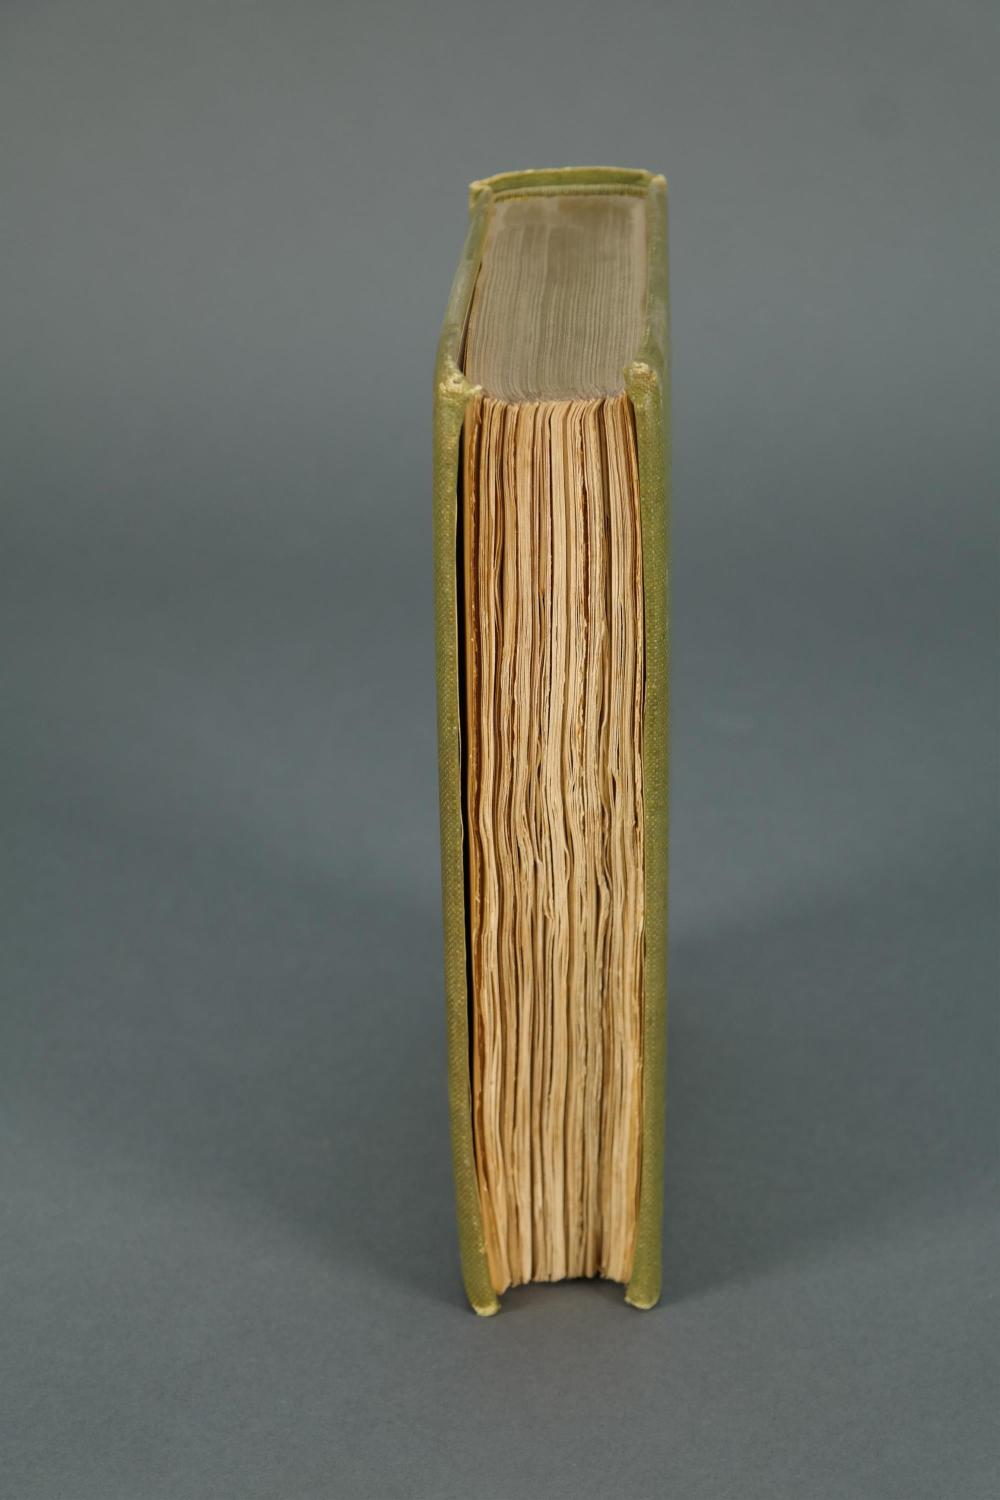 Lot 188: Huxley. Point Counter Point. 1st ed.